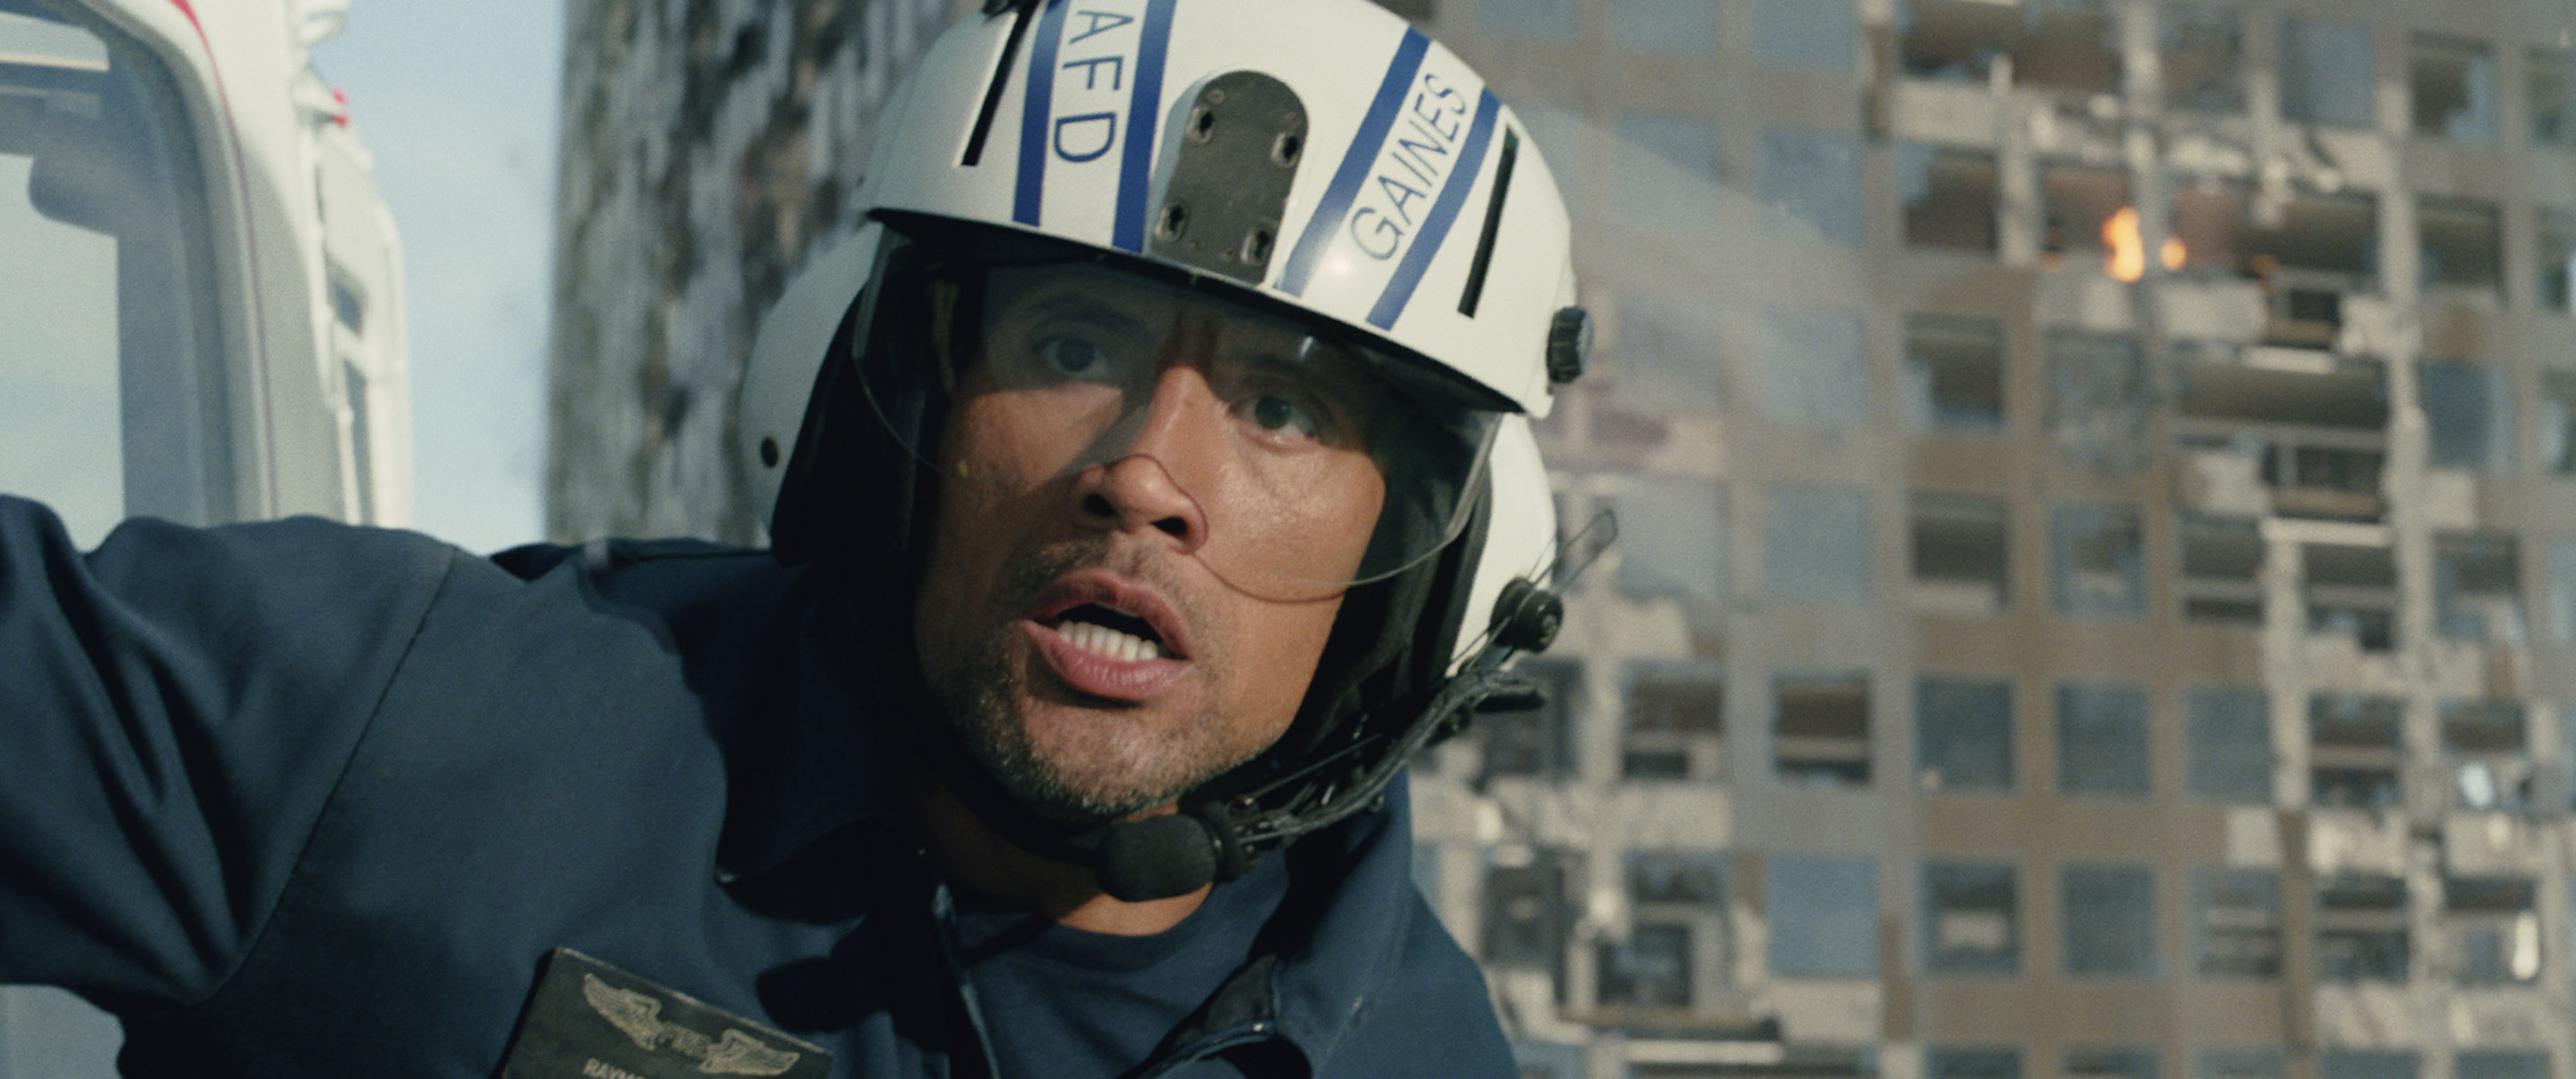 Dwayne Johnson as Ray in the action thriller 'San Andreas,' a prouction of New Line Cinema and Village Roadshow Pictures, released by Warner Bros. Pictures. (Jasin Boland/Warner Bros.)